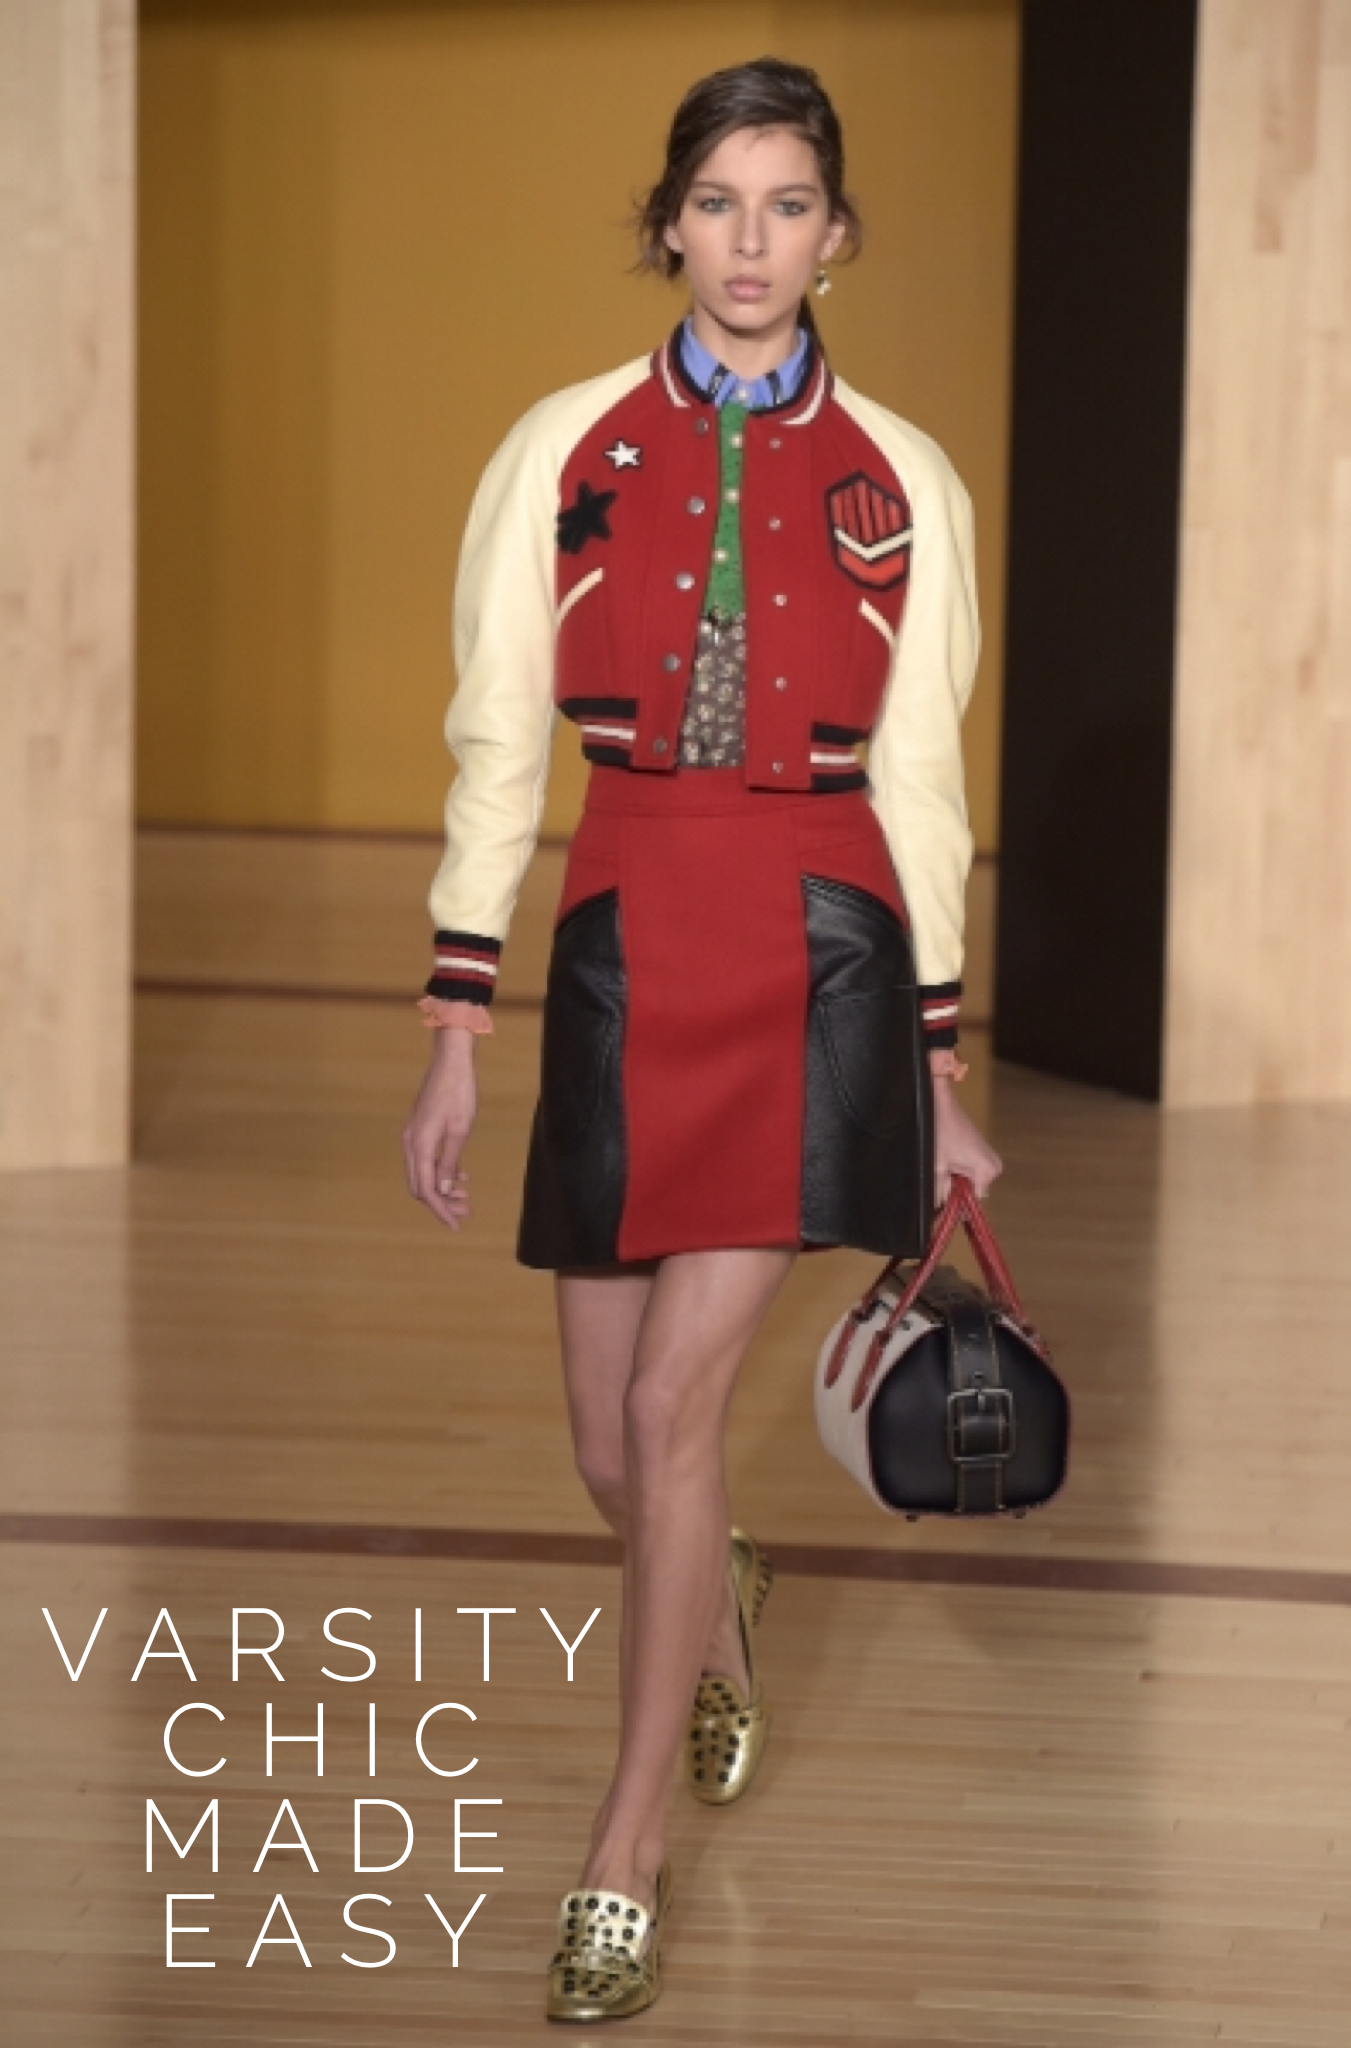 Coach RTW Fall 2016 presented varsity jackets in oversize and cropped versions during #NYFW